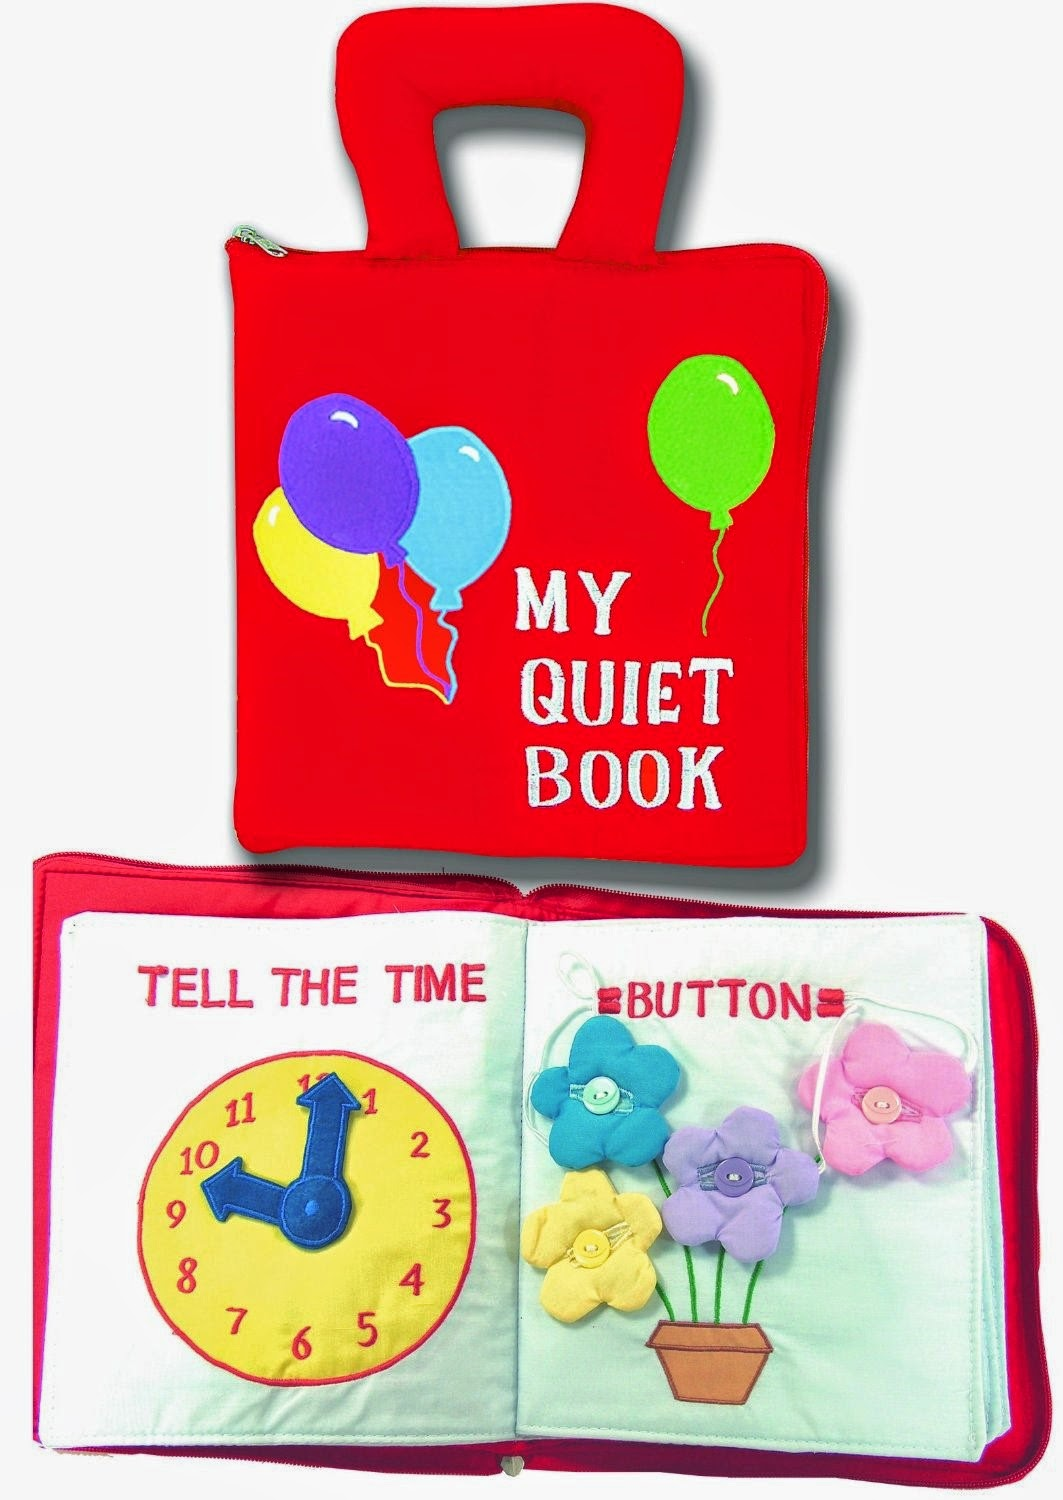 http://www.amazon.com/Quiet-Book-Fabric-Activity-Children/dp/B00000J3LL/ref=sr_1_2?ie=UTF8&qid=1429803153&sr=8-2&keywords=my+quiet+book